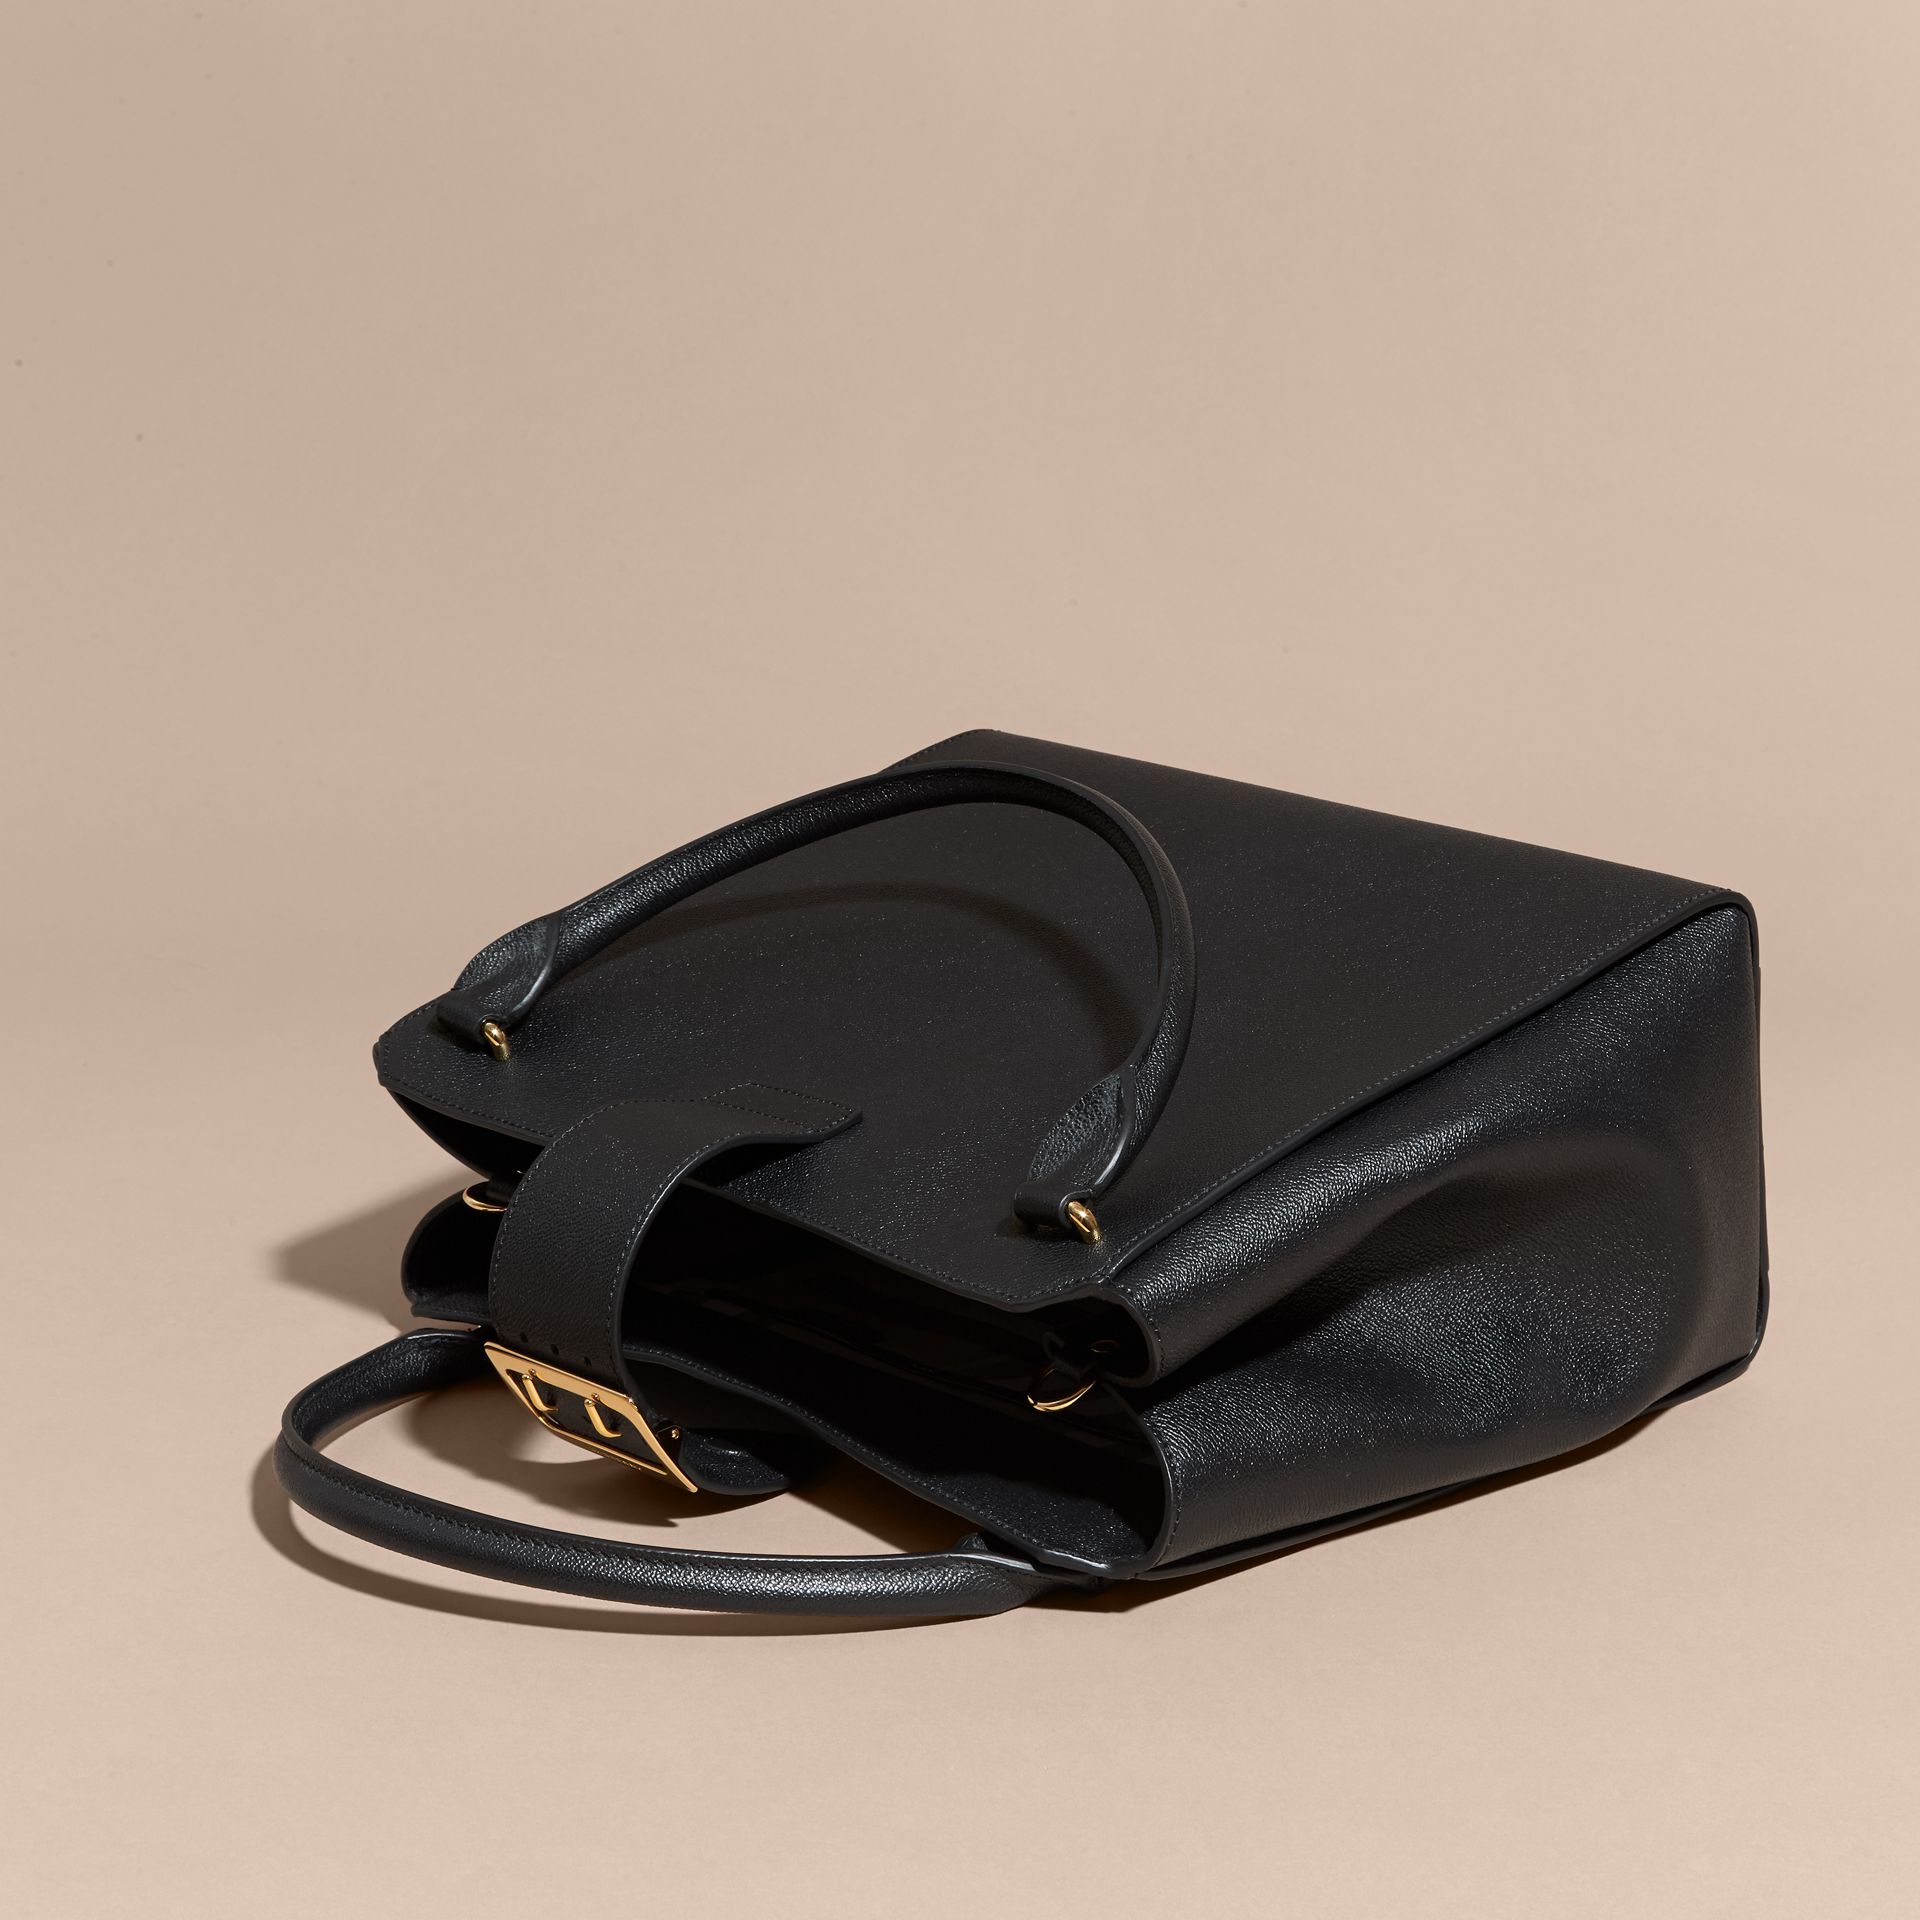 Borsa tote The Buckle grande in pelle a grana (Nero) - Donna | Burberry - immagine della galleria 5